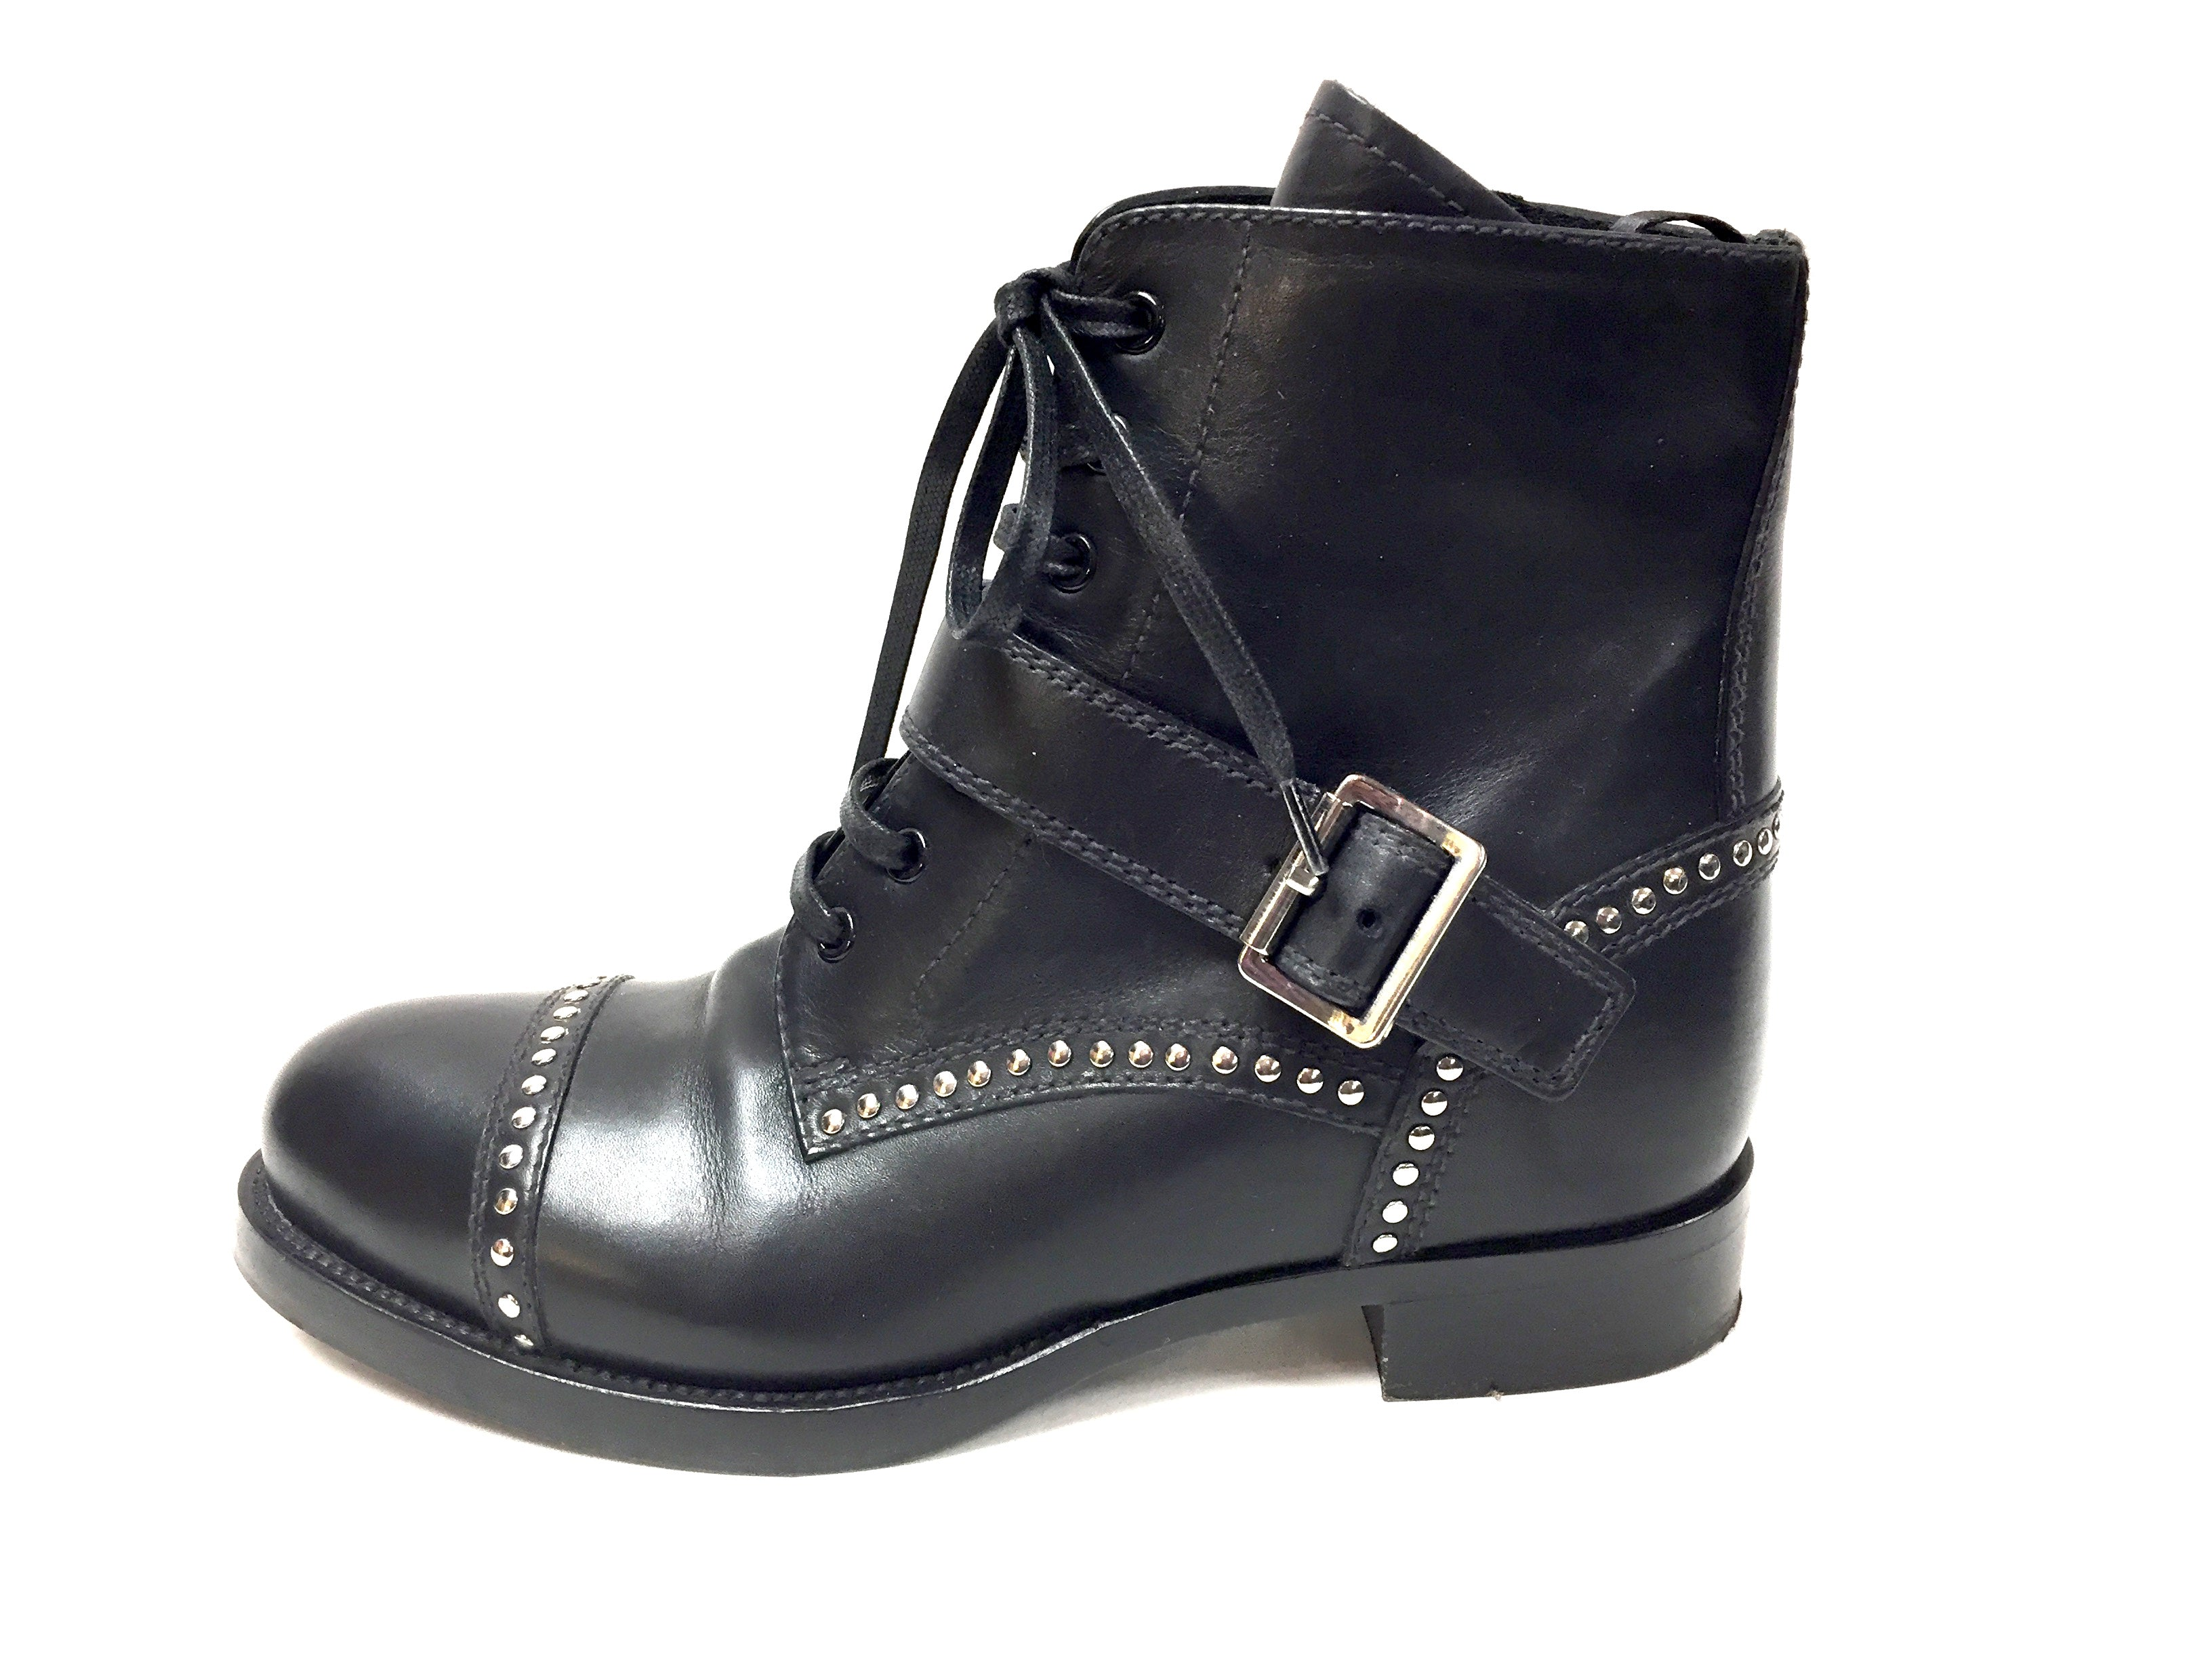 06587ce0 PRADA Black Leather Silver-Studded Lace-Up Flat Ankle-Boots Booties Shoes  Size: IT 37.5 / US 7.5